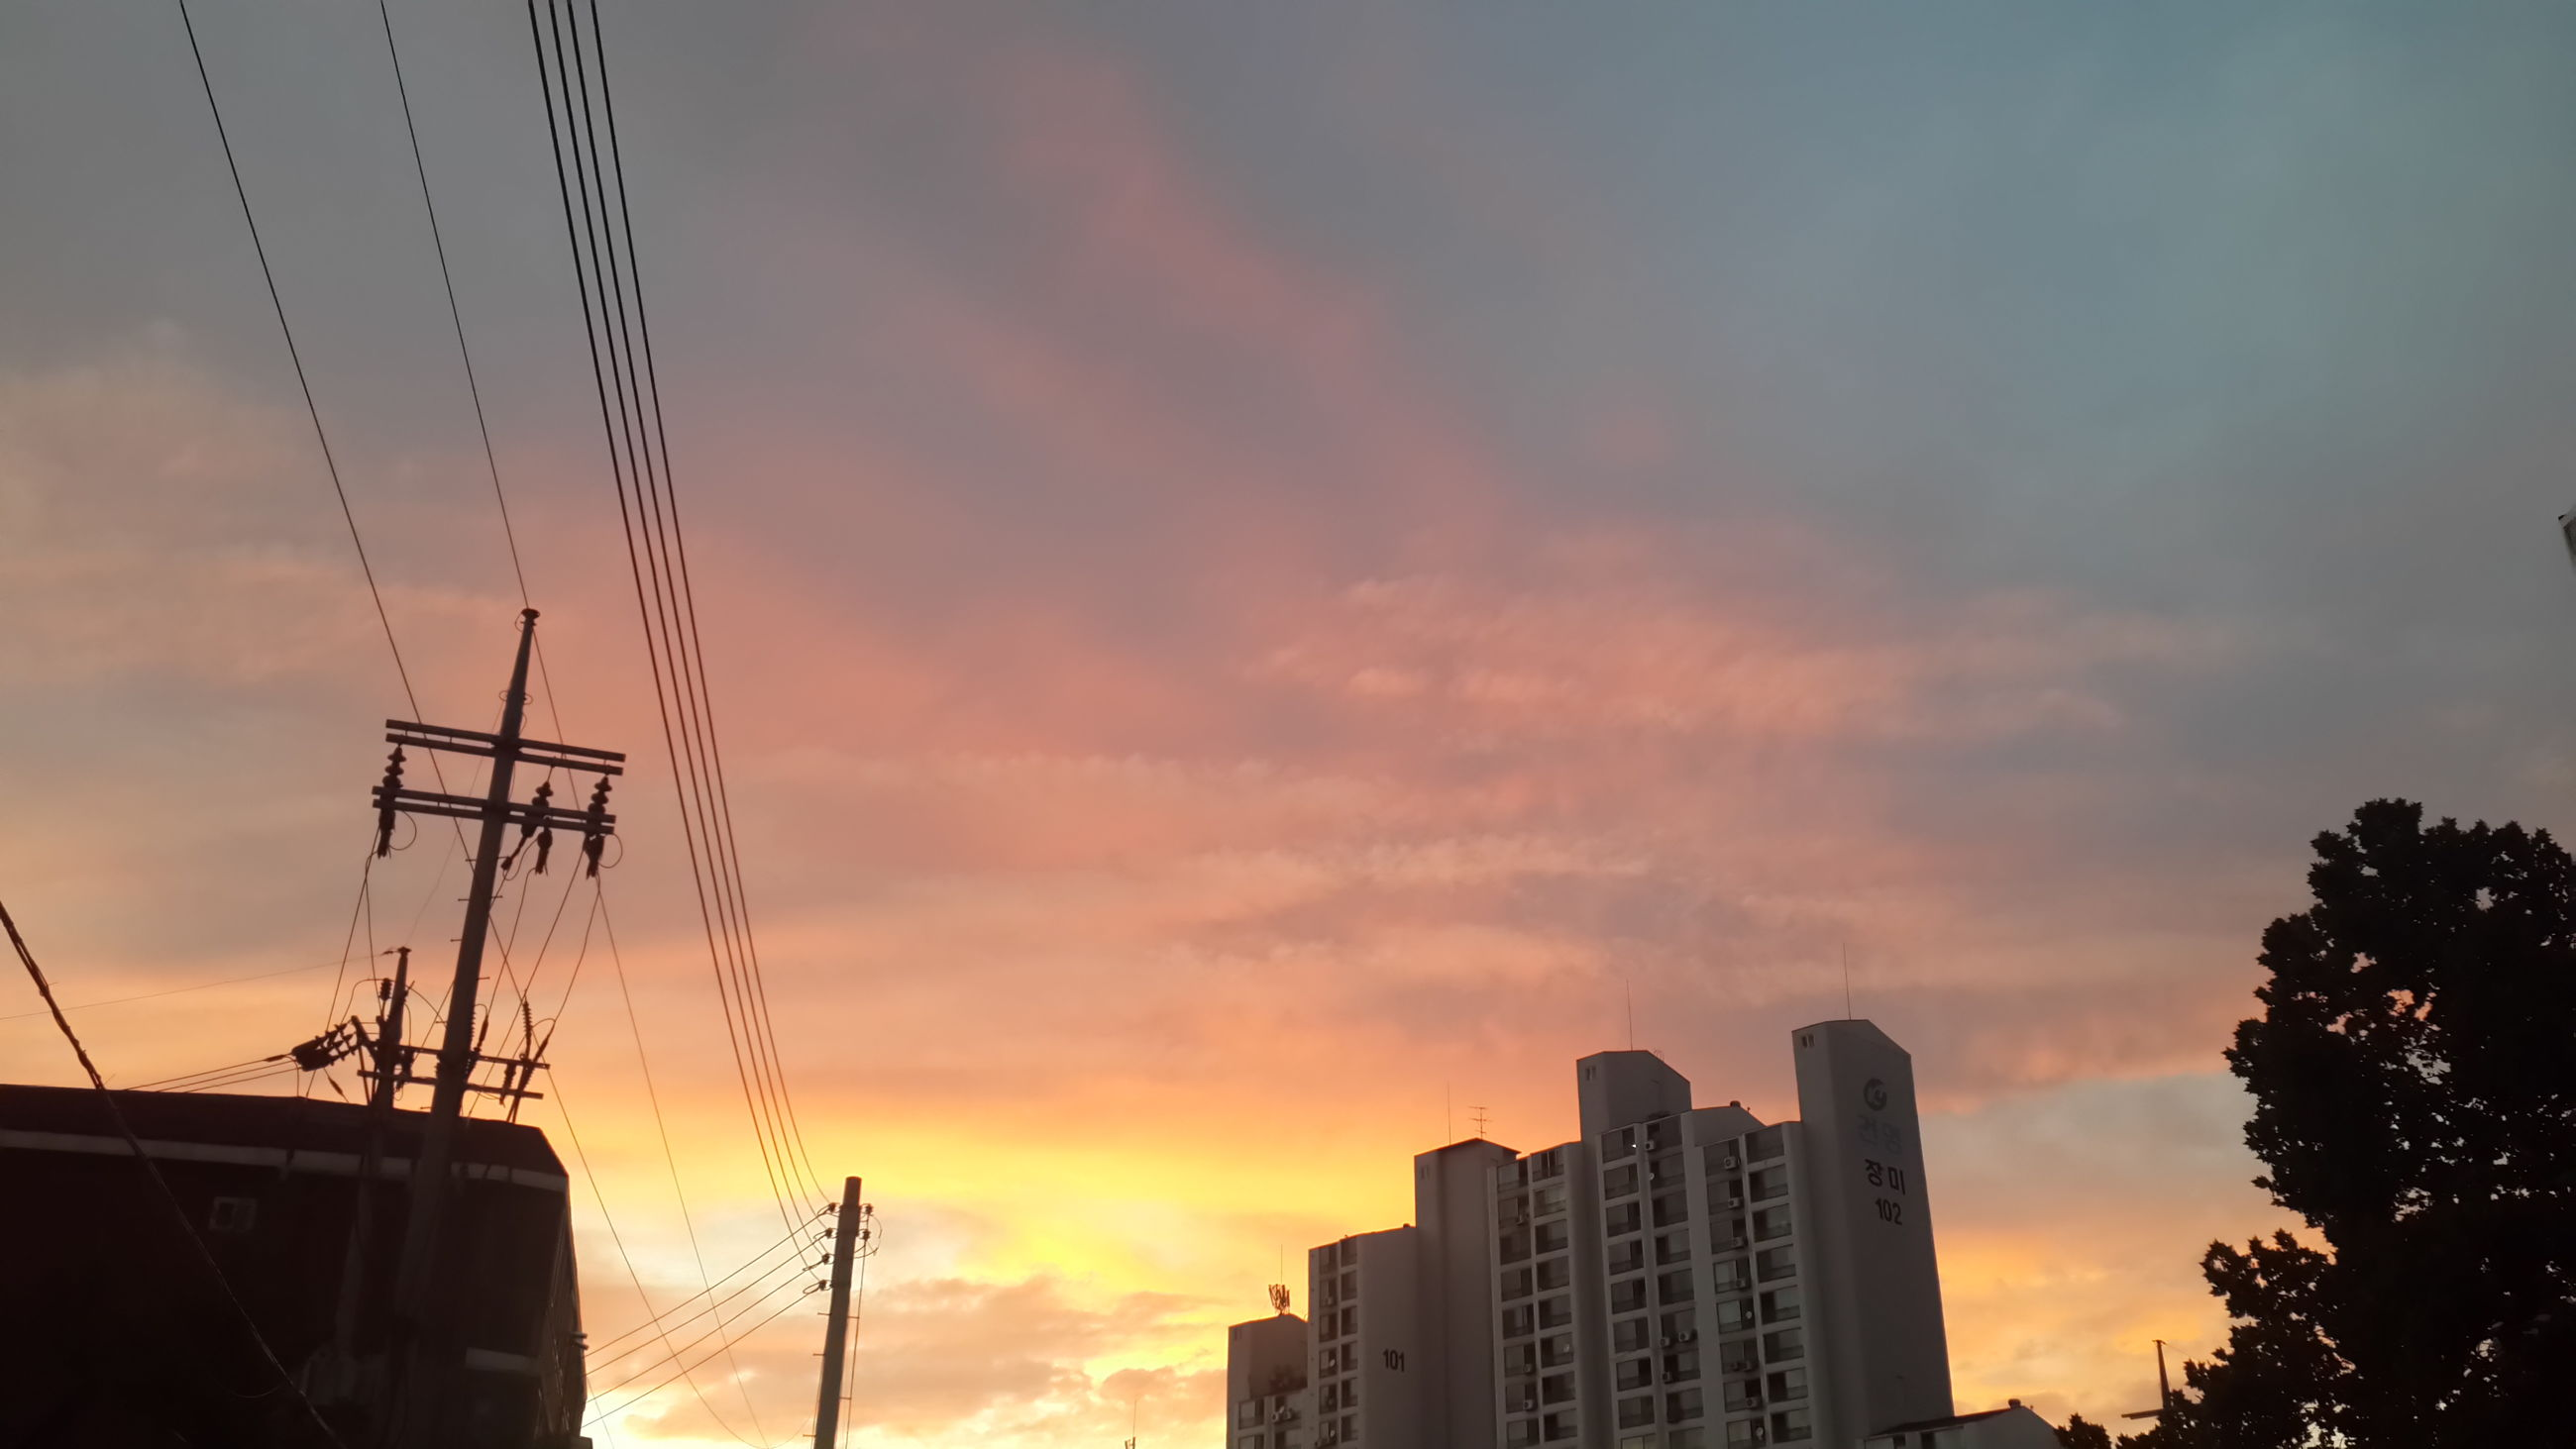 sunset, building exterior, architecture, low angle view, built structure, sky, silhouette, orange color, cloud - sky, power line, city, building, outdoors, cloud, cable, electricity pylon, no people, connection, residential building, high section